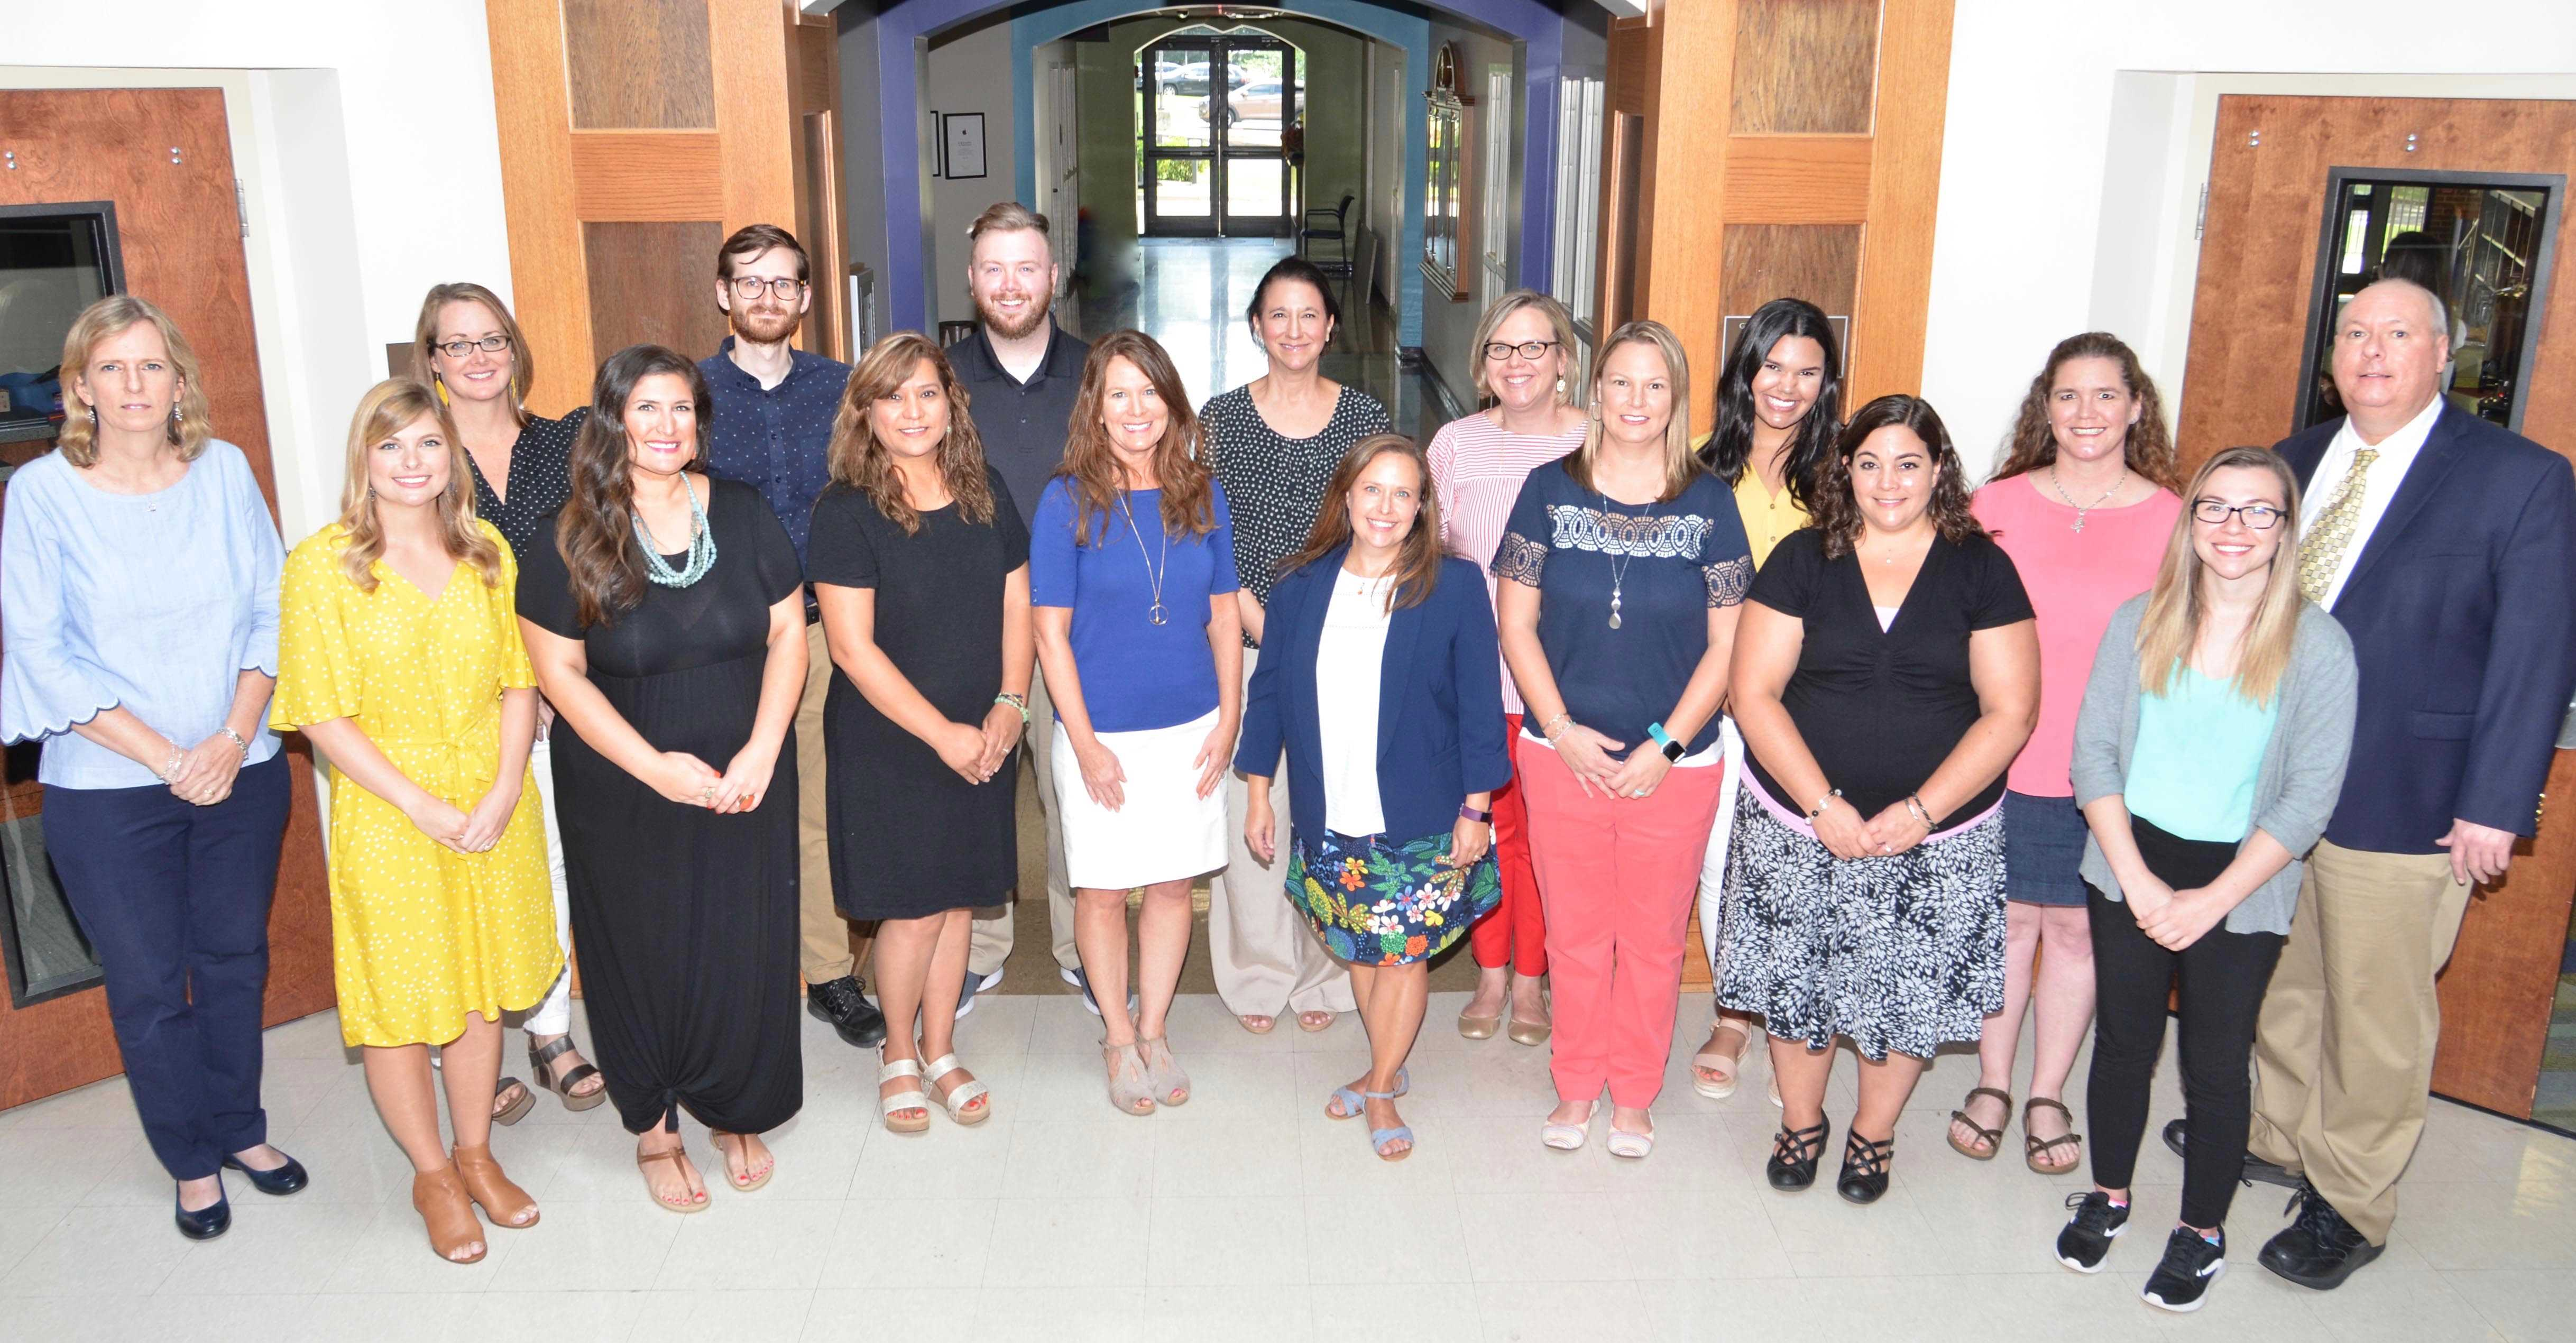 St. Agnes-St. Dominic Welcomes New Faculty